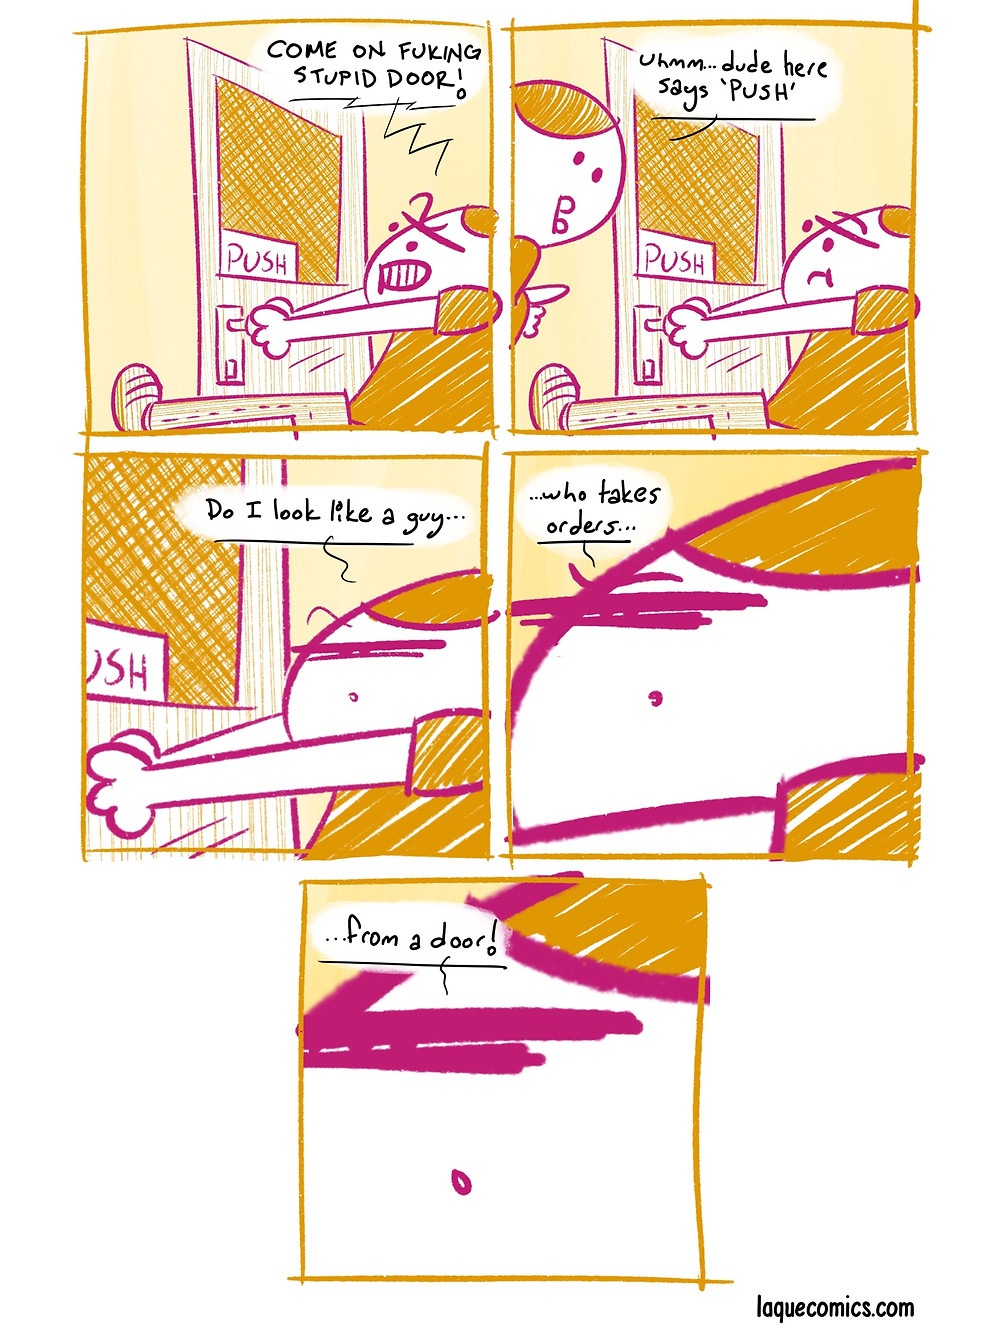 A five-panel comic about a tough guy.